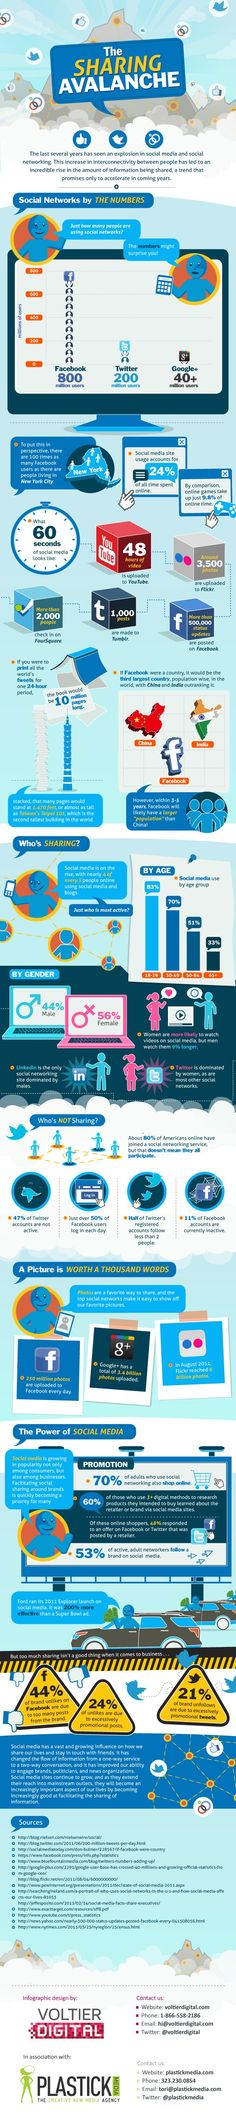 The sharing avalanche that happens on social media [infographic] pinterset http://holykaw.alltop.com/the-sharing-avalanche-that-happens-on-social